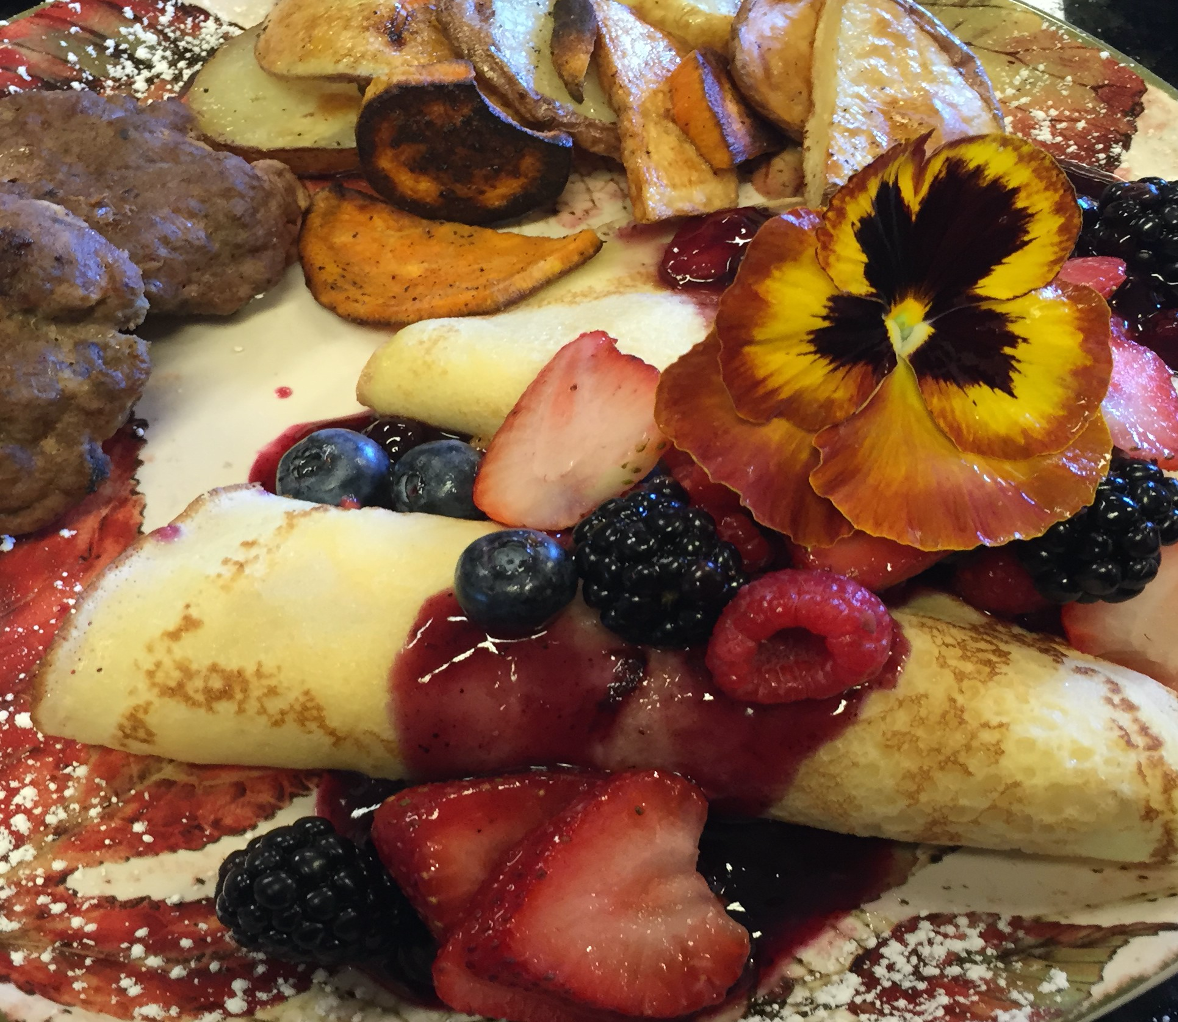 Breakfast at Annville Inn. Crepes with a warm berry sauce, home made sausage, oven roasted potato medly. Garnished by a unique colorful pansy.